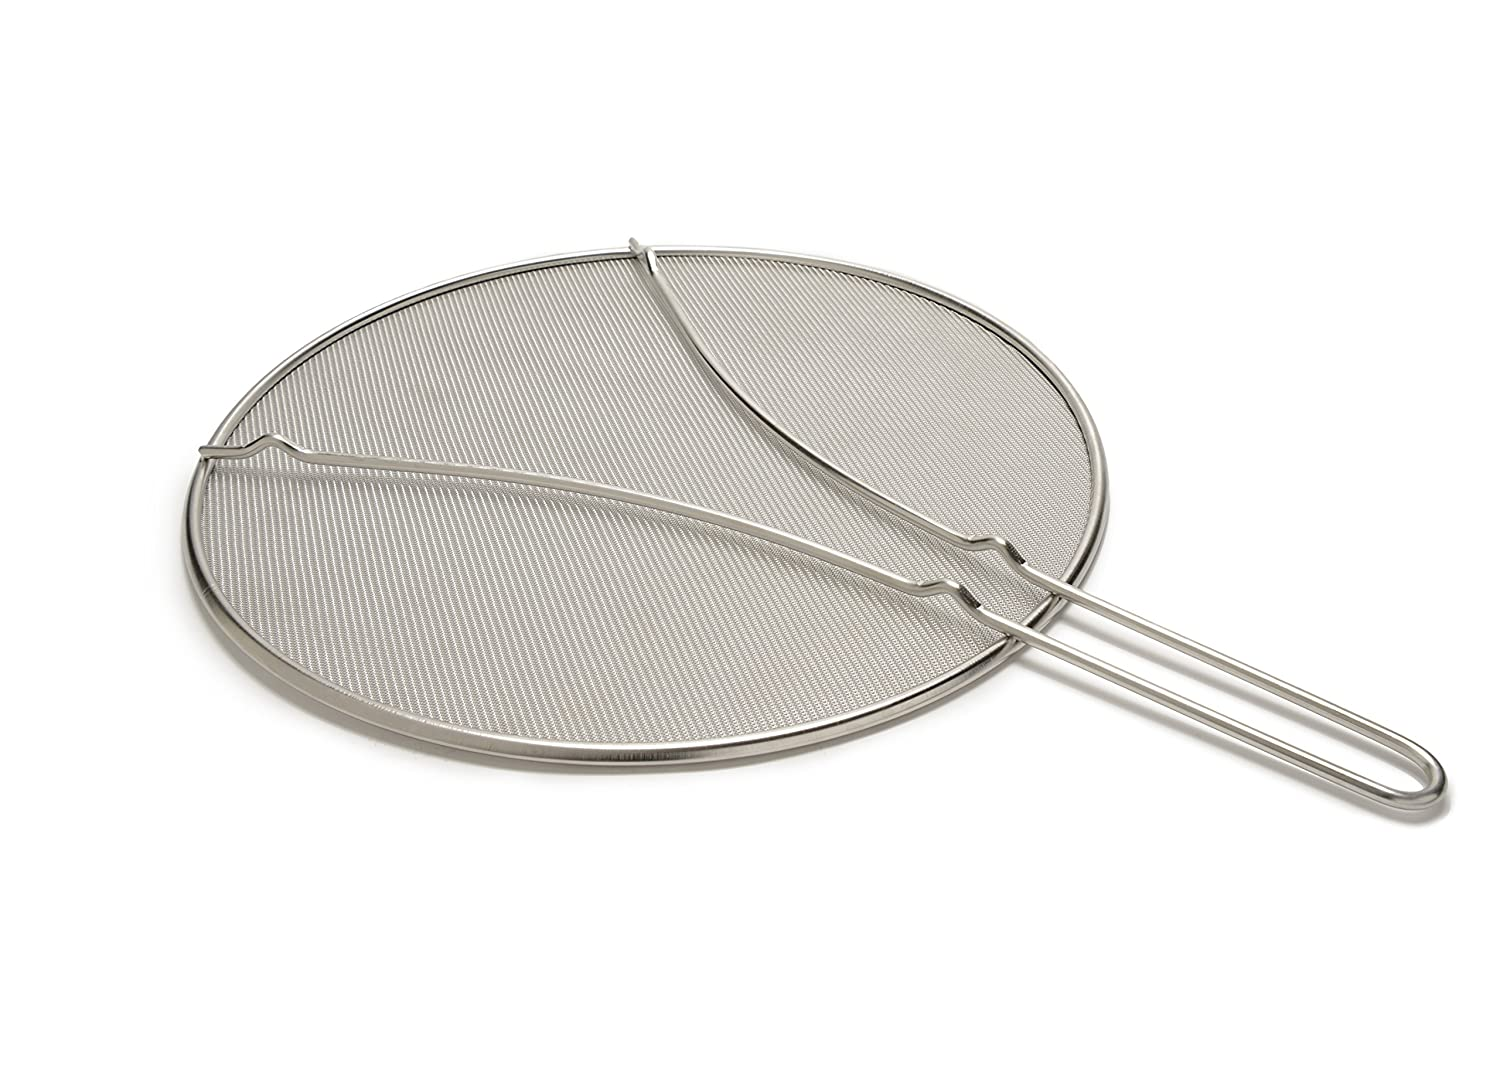 """Splatter Screen - 13"""" Stainless Steel Screen with Fine Mesh and Resting Feet - High Quality Food Safe Heavy Duty Grease Guard Splash Shield for Pots and Frying Pans"""